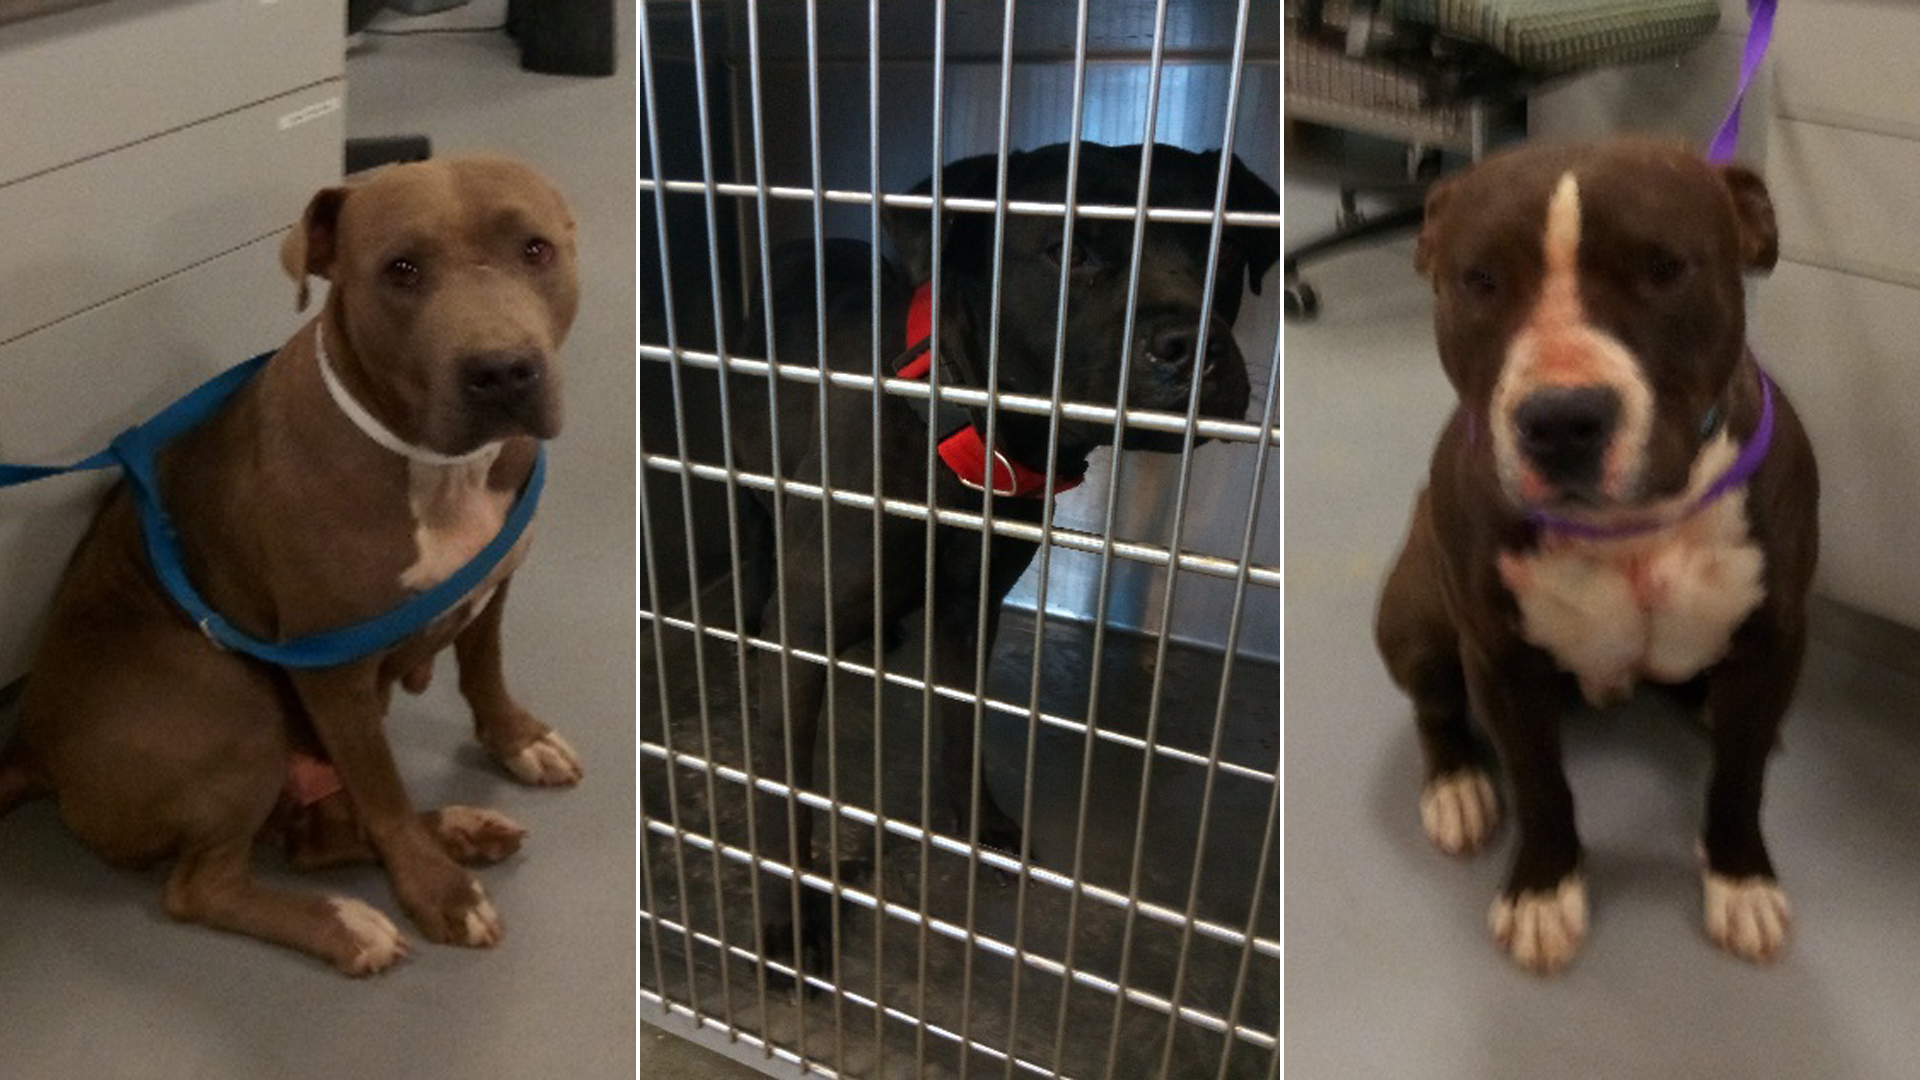 Riverside County Animal Services released these images of dogs they said attacked a woman in Anza on Dec. 15, 2018.